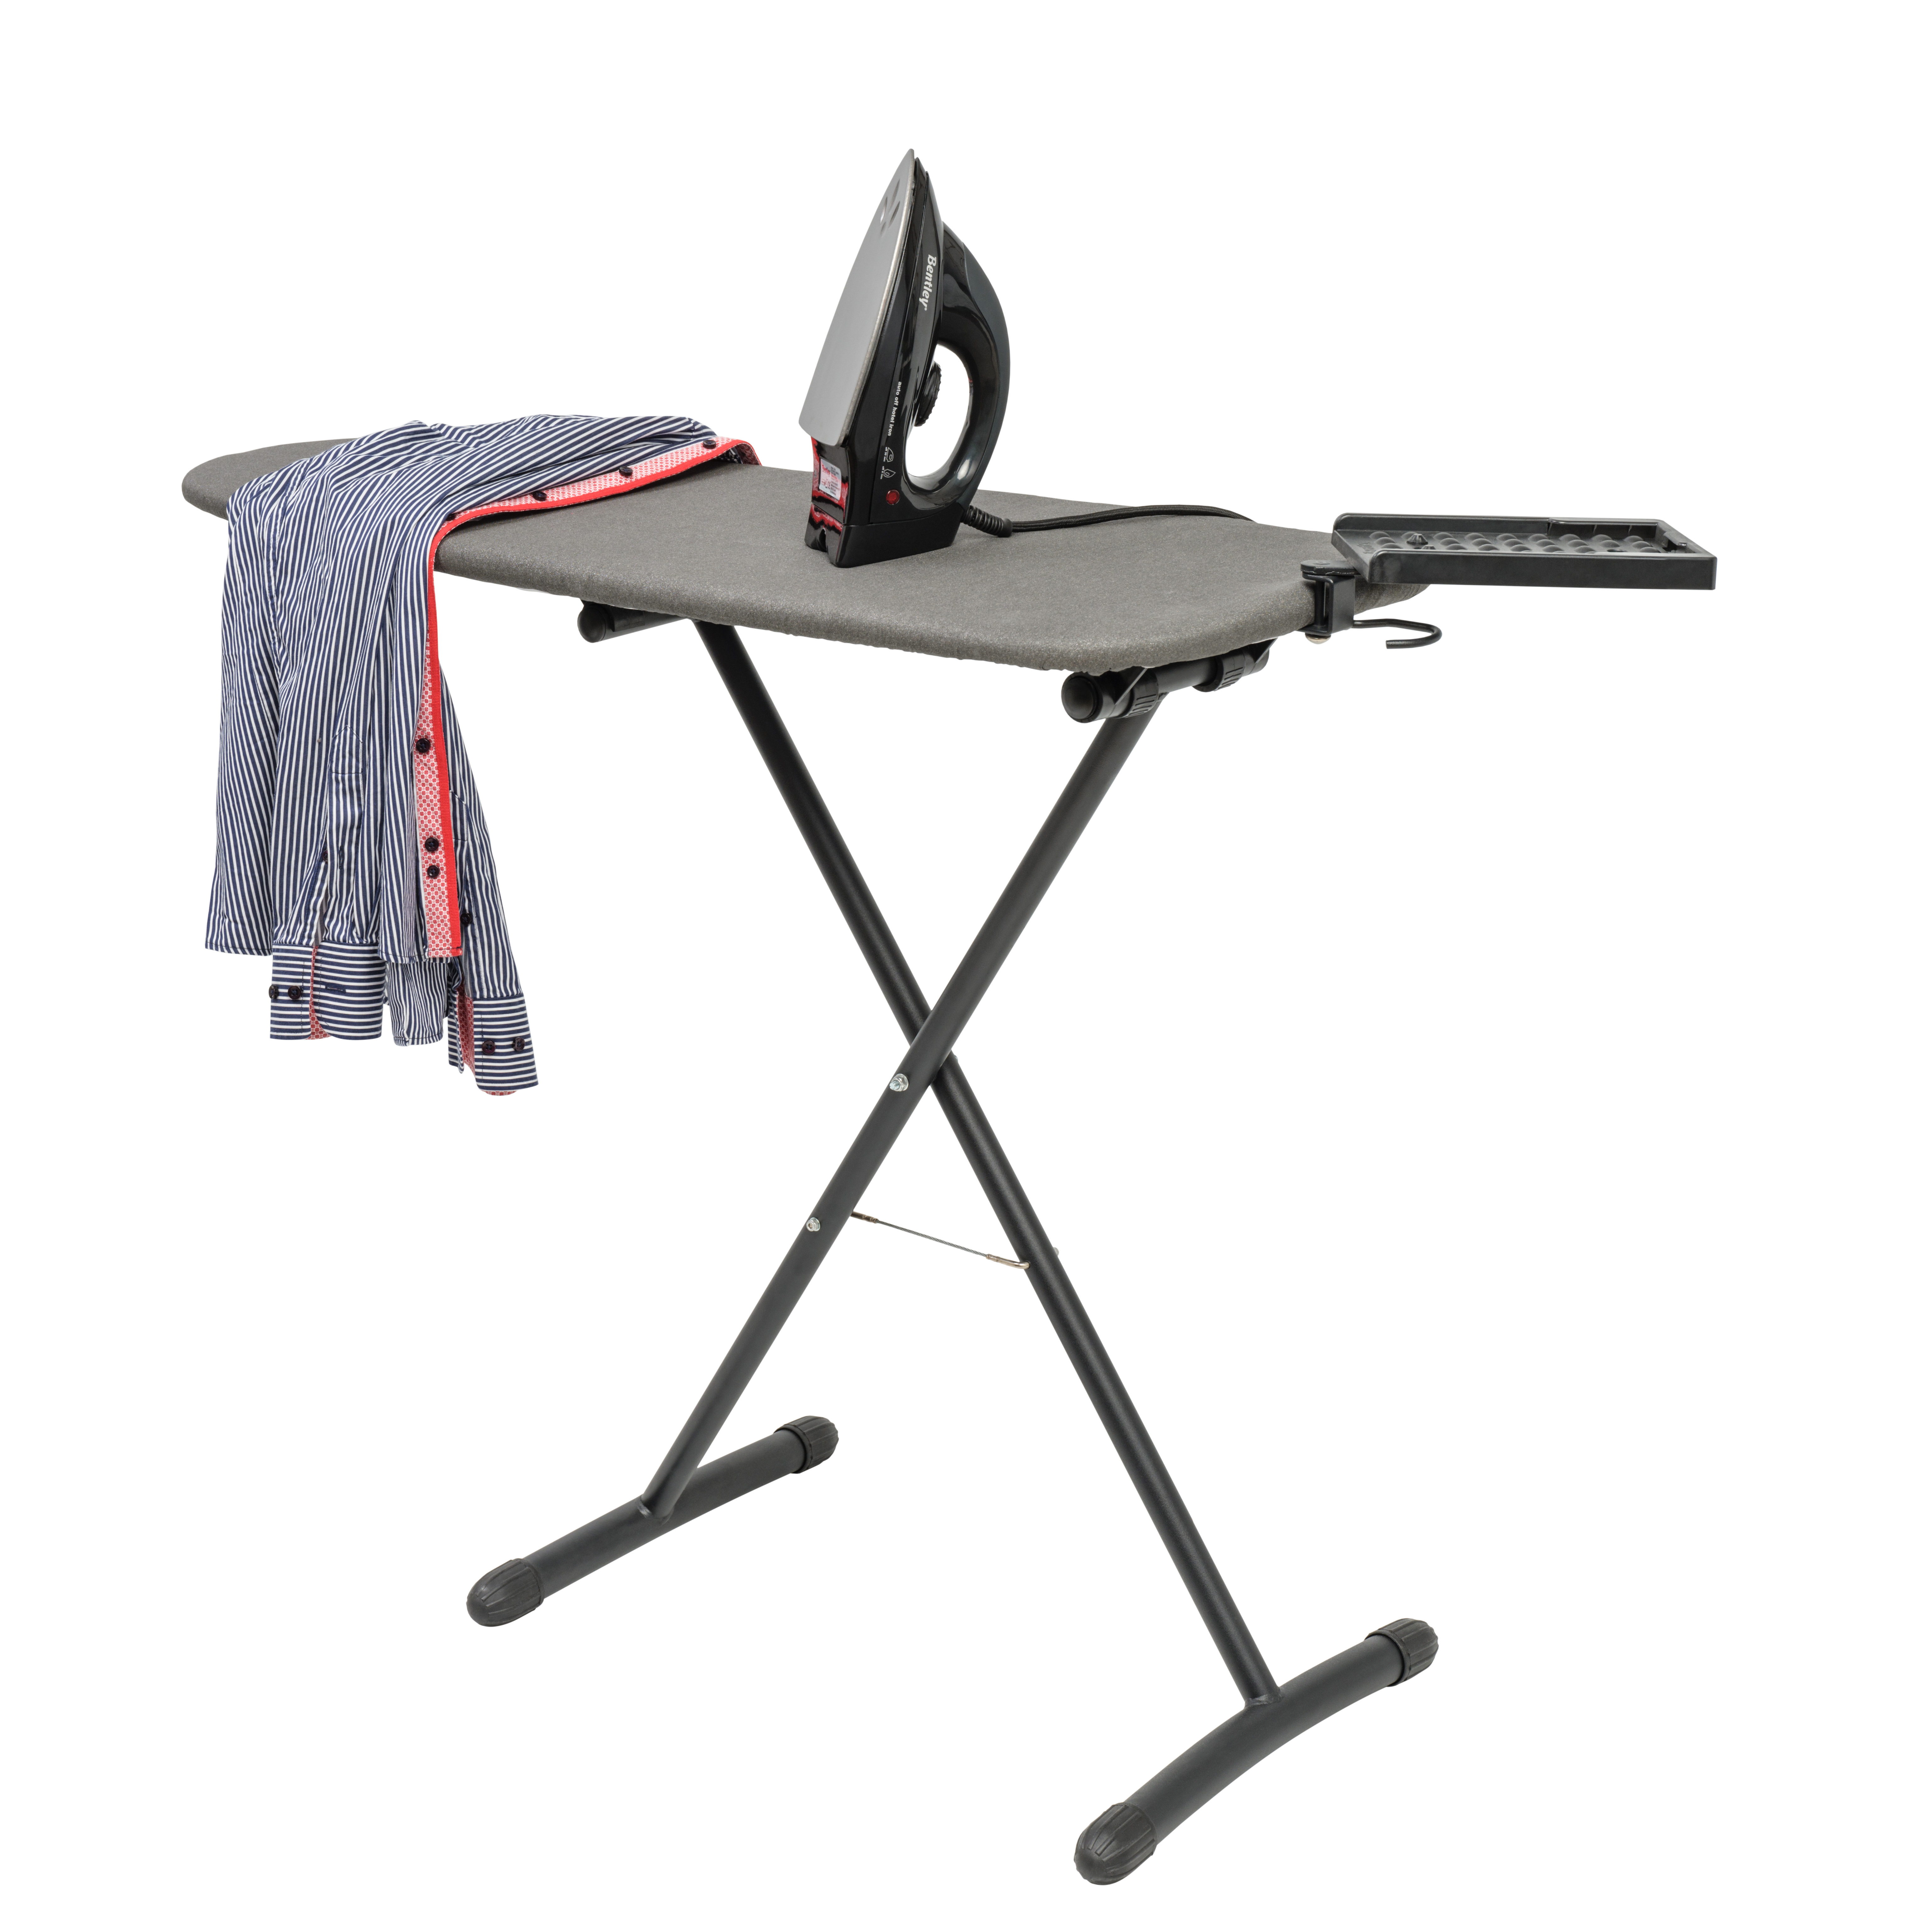 Ironing centre Ocean, dimensions: folded: 40 x 8,5 x 102 cm (w x d x h), ironing surface: 100 x 40 cm (w x d)